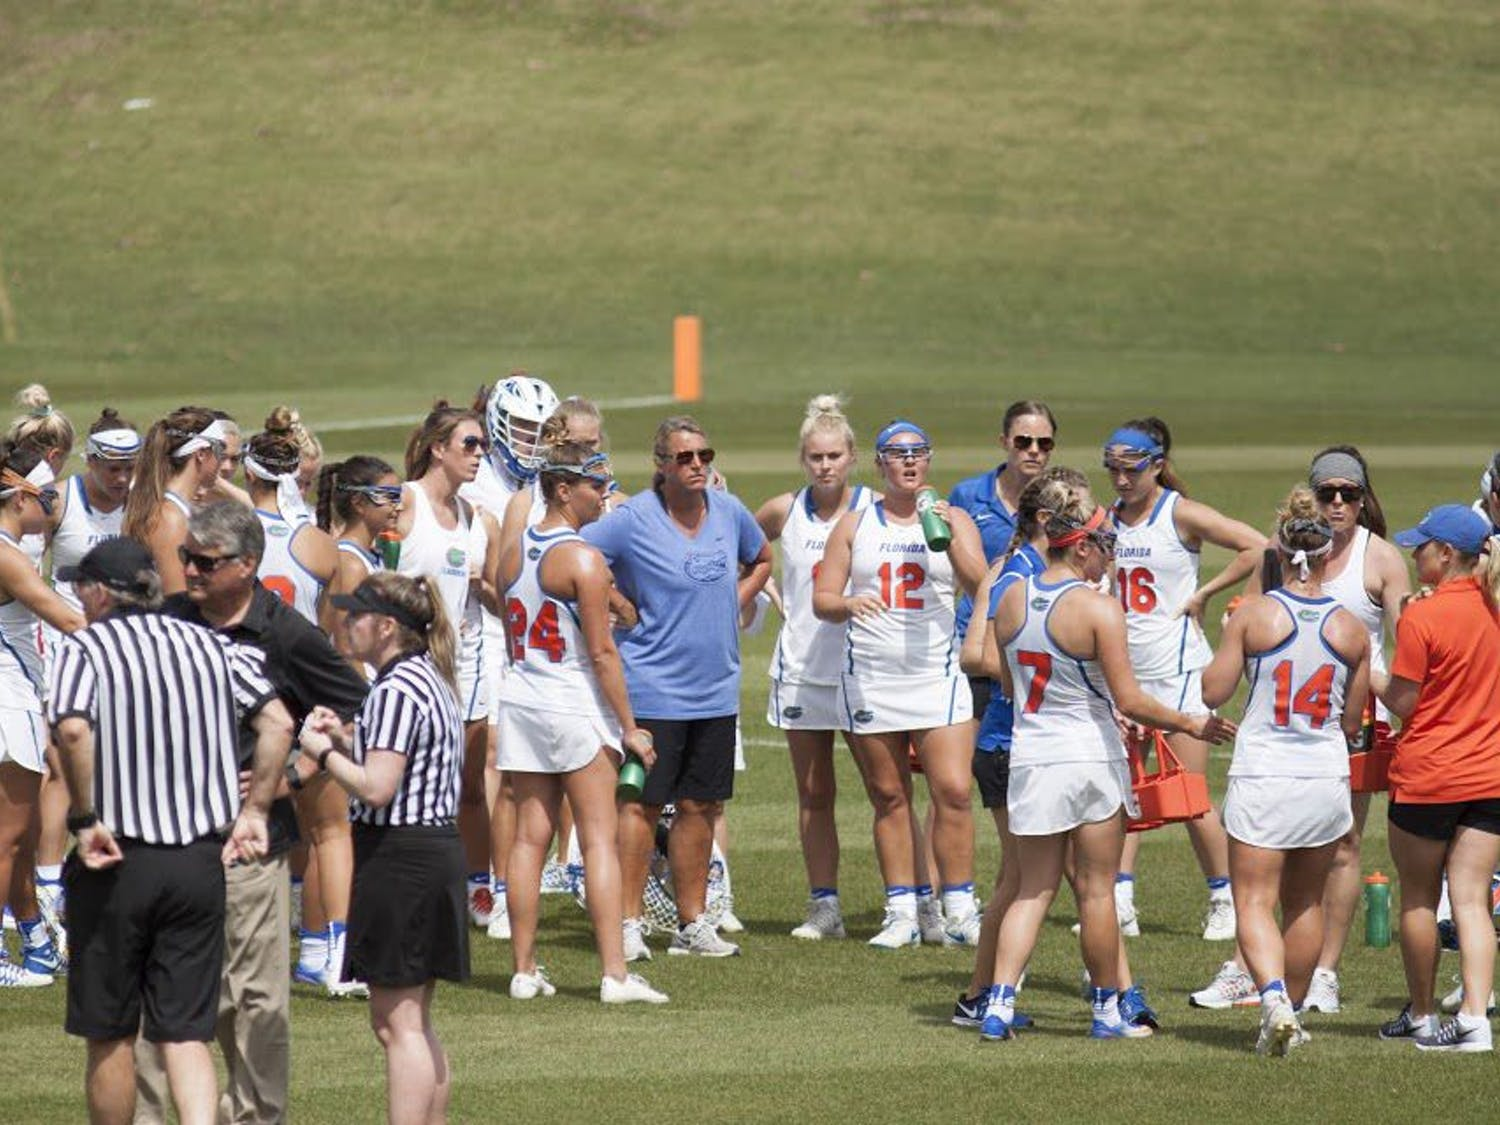 UF lacrosse head coach Amanda O'Leary stands in the center of her players during Florida's 15-8 win against Denver on March 25, 2017, at Donald R. Dizney Stadium.